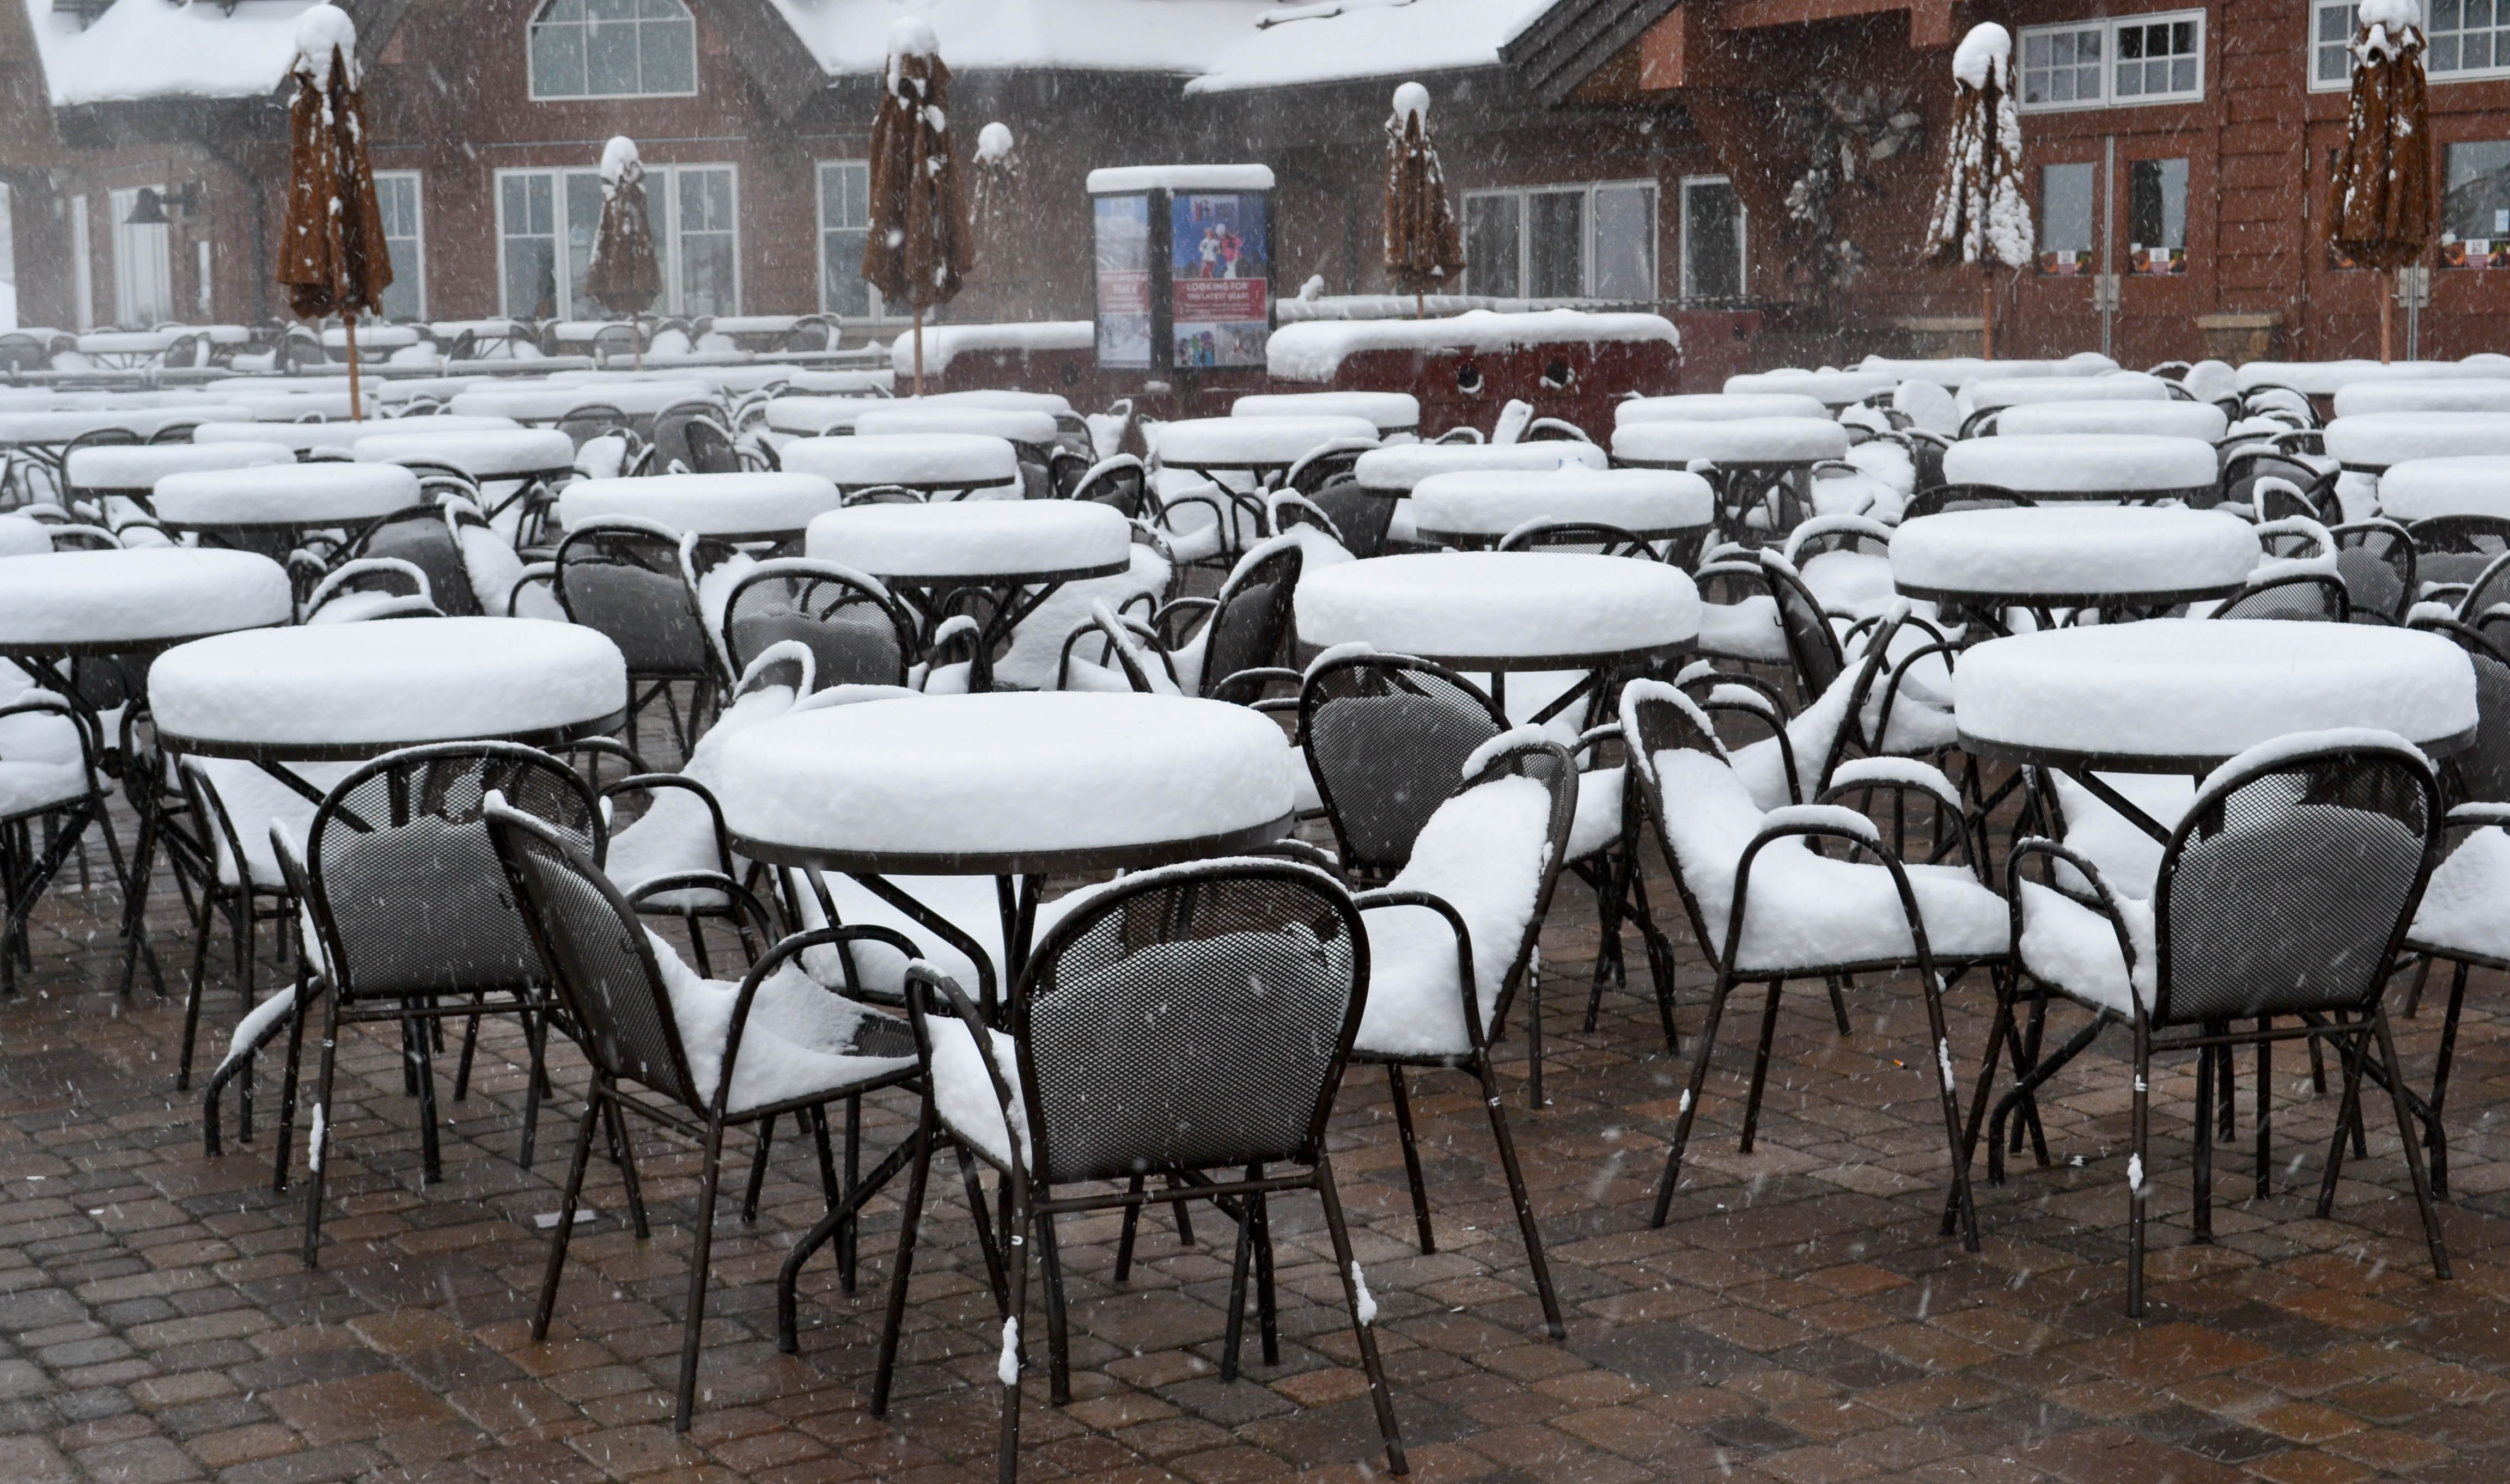 Snow covered tables